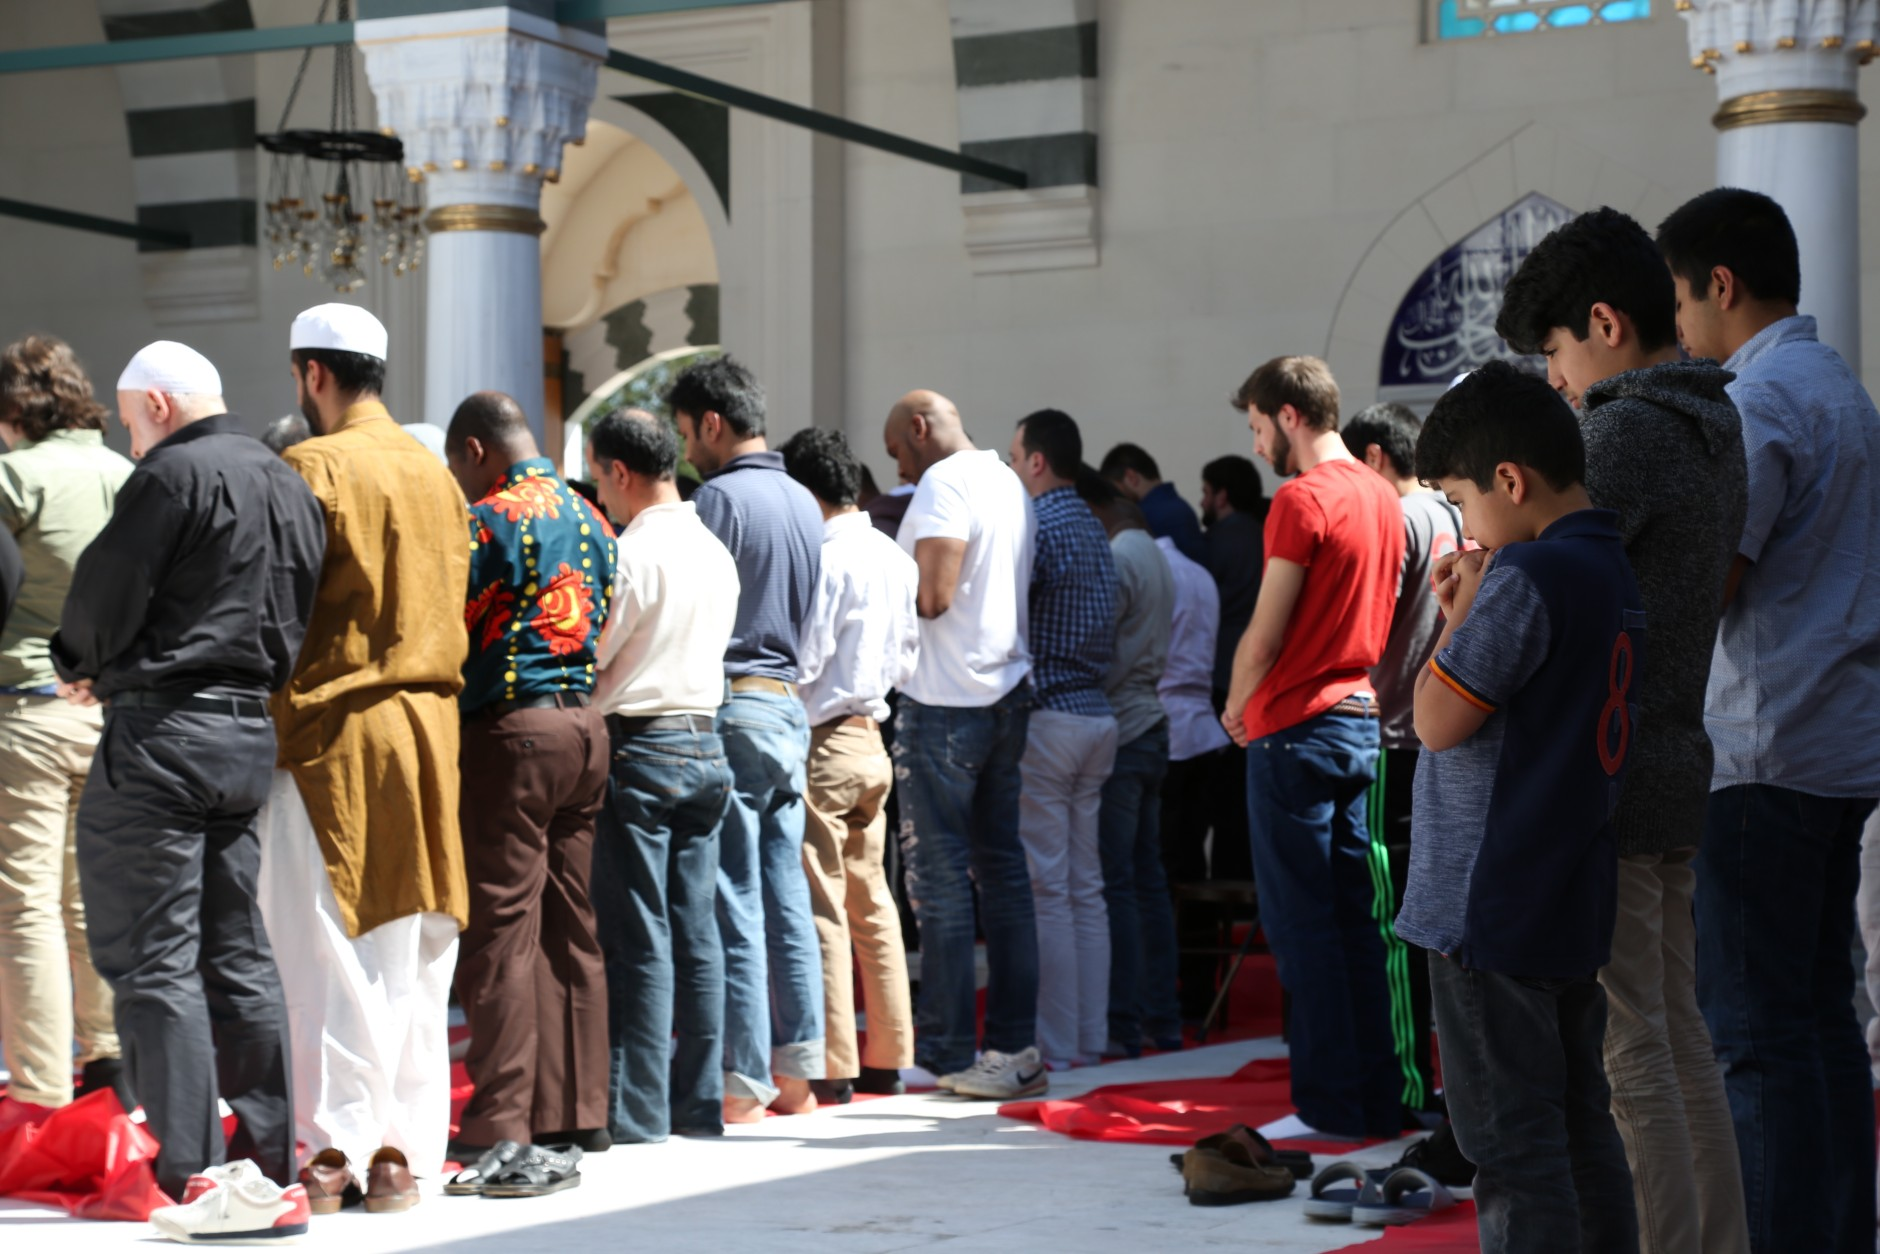 Men line up in prayer on Friday April 1, 2016 at the Diyanet Center of America's mosque in Lanham, Md. (WTOP/Omama Altaleb)